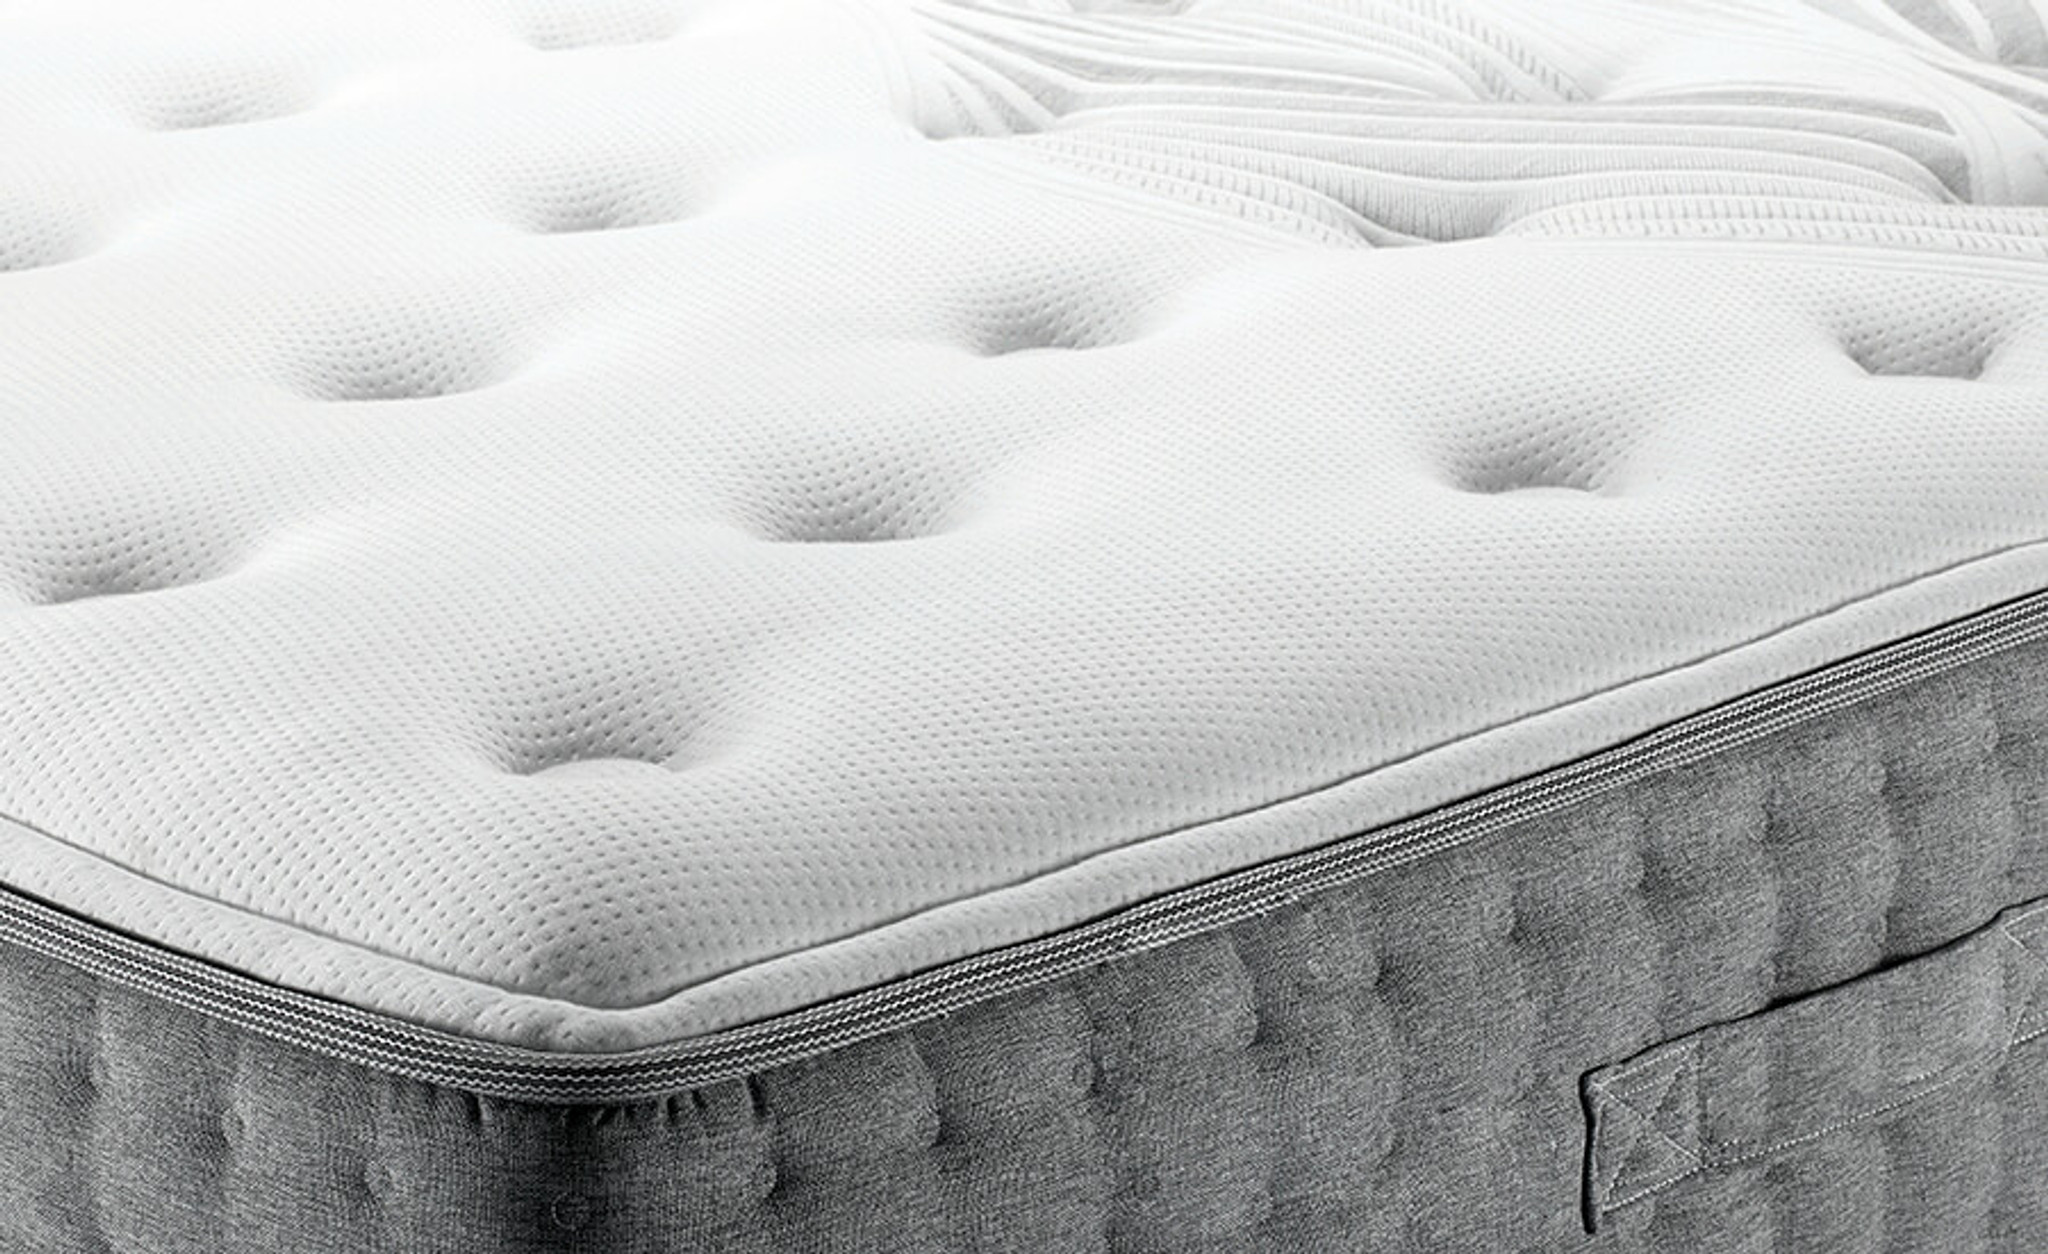 4 reasons not to buy thick mattresses & how to measure yours